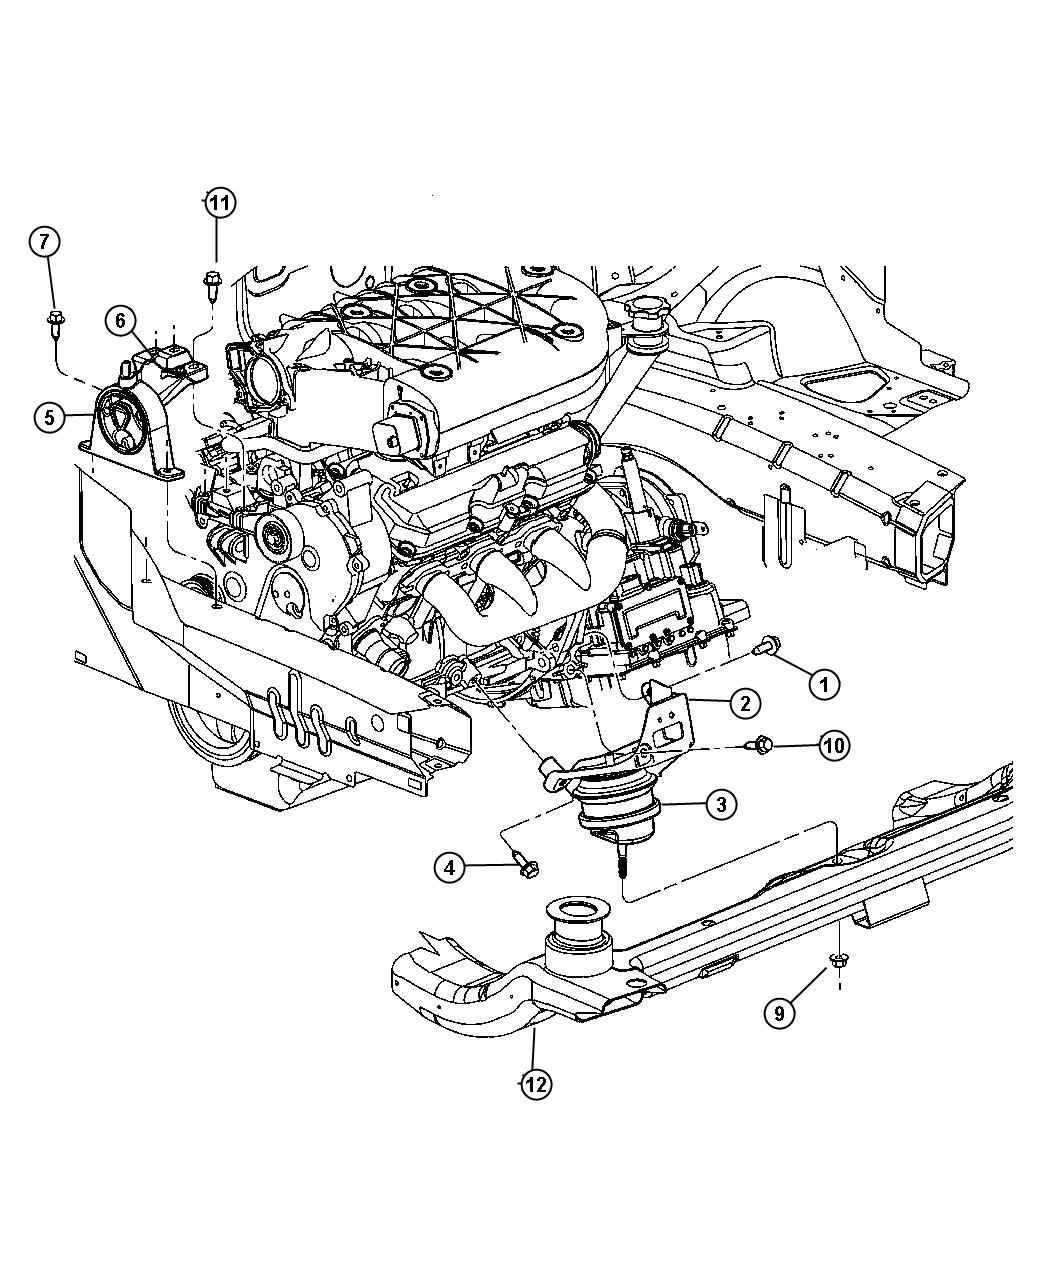 Sophisticated pacifica ground wire schematic images best image scintillating 2005 chrysler pacifica radio